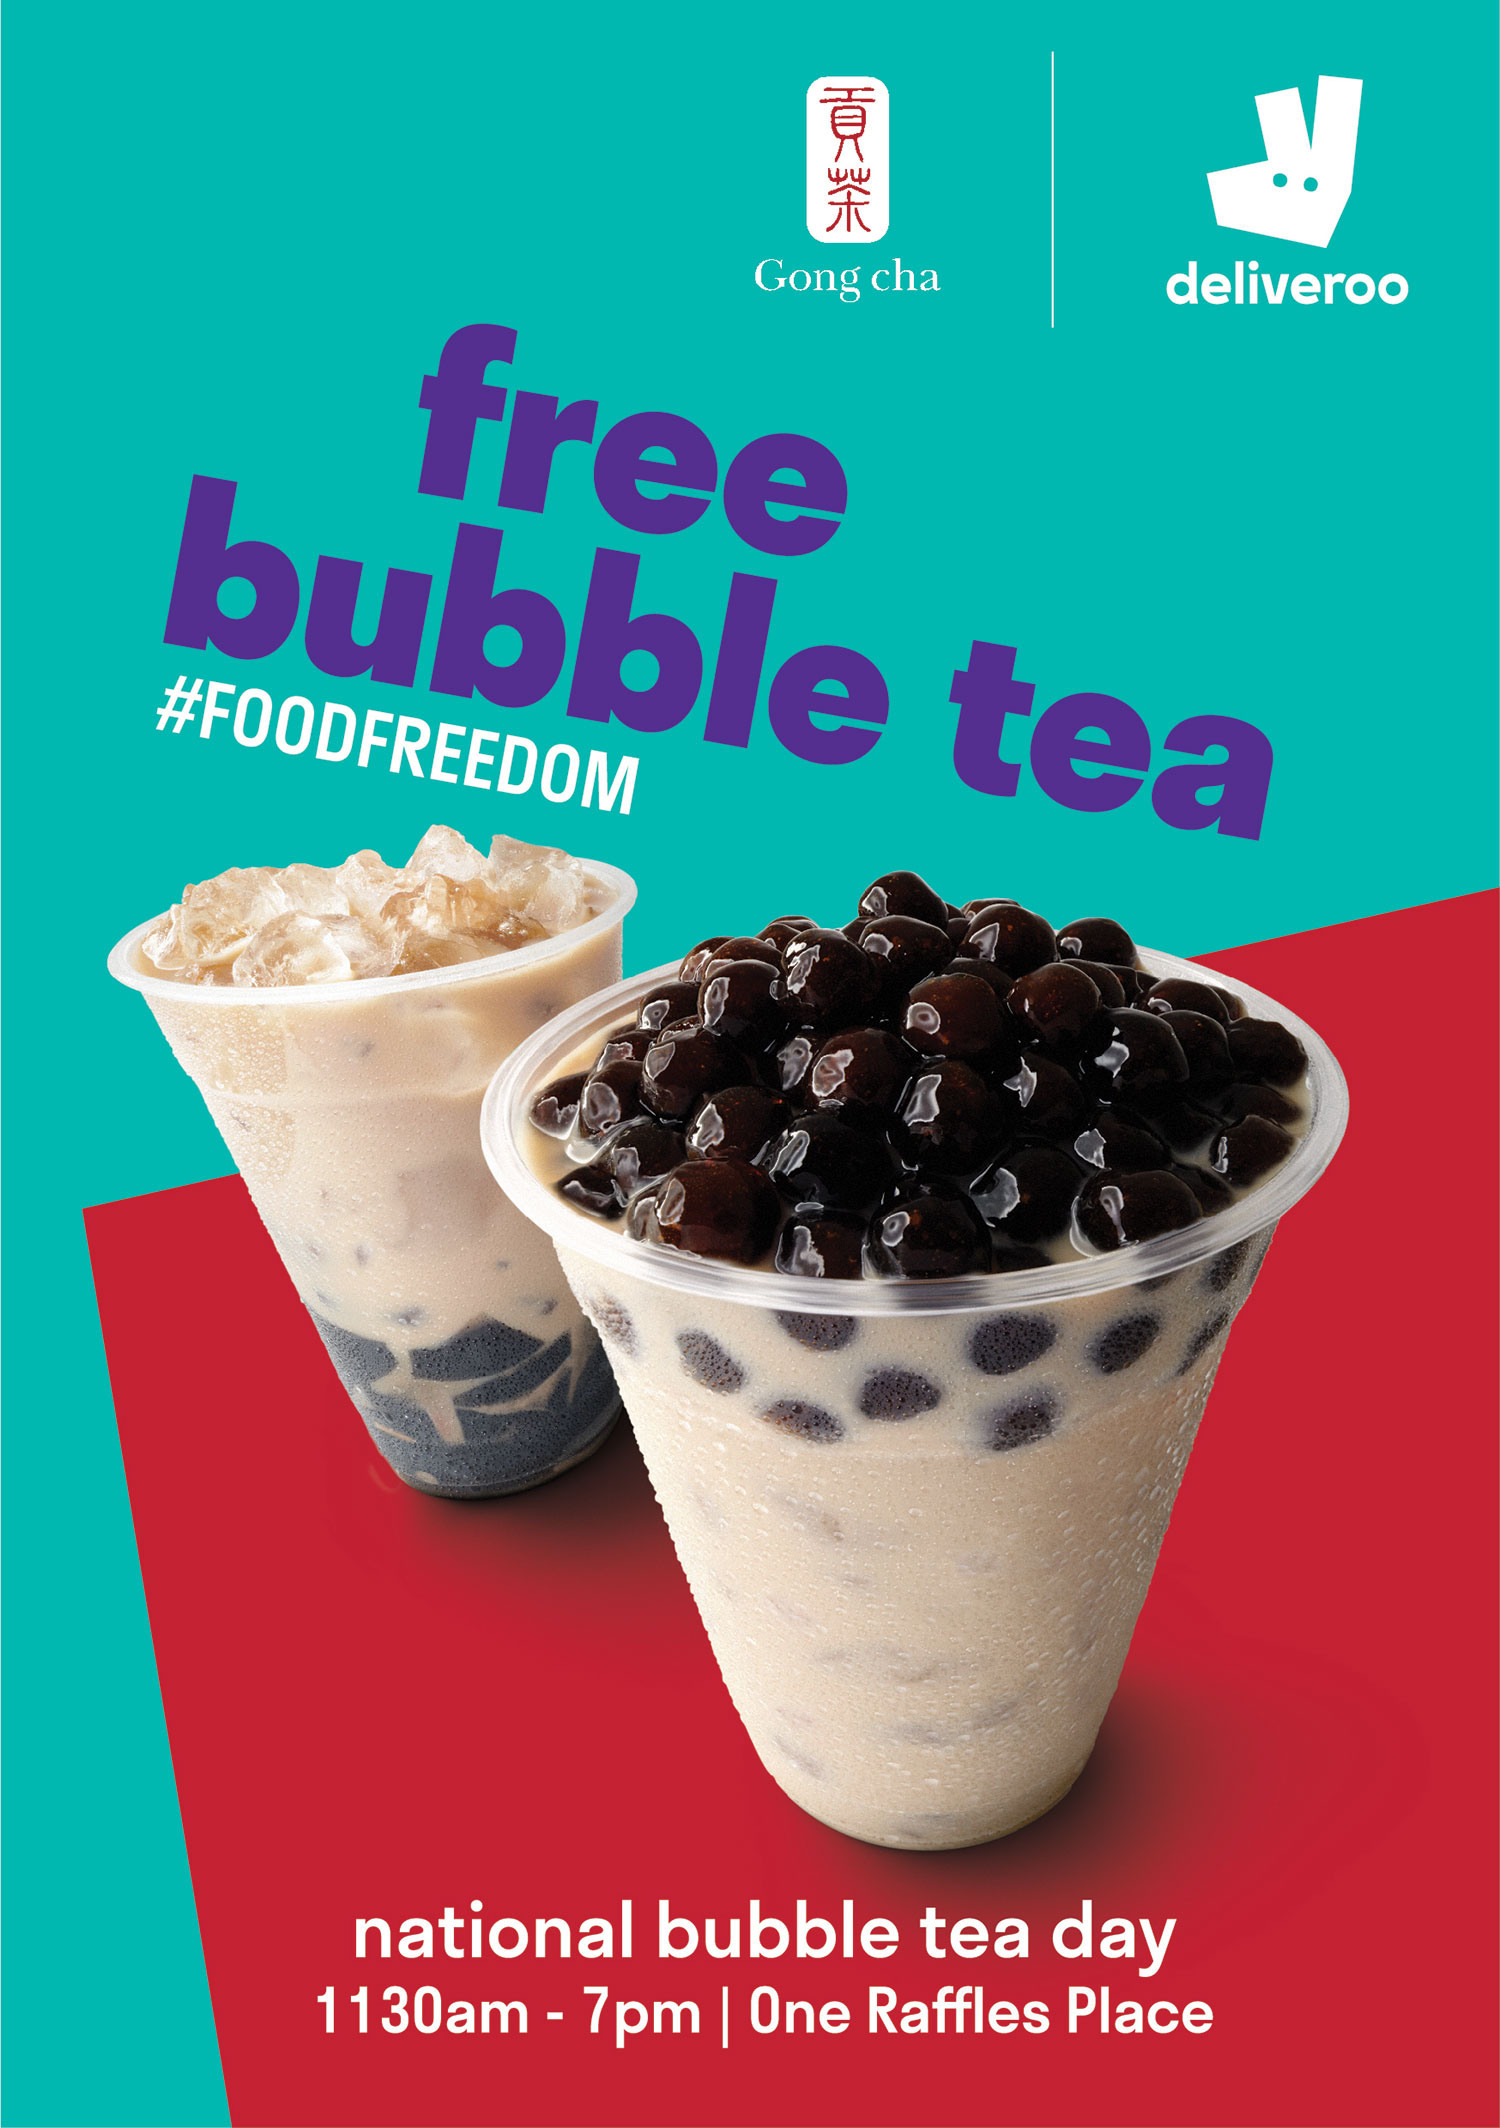 Deliveroo-x-Gongcha-Promotional-Poster